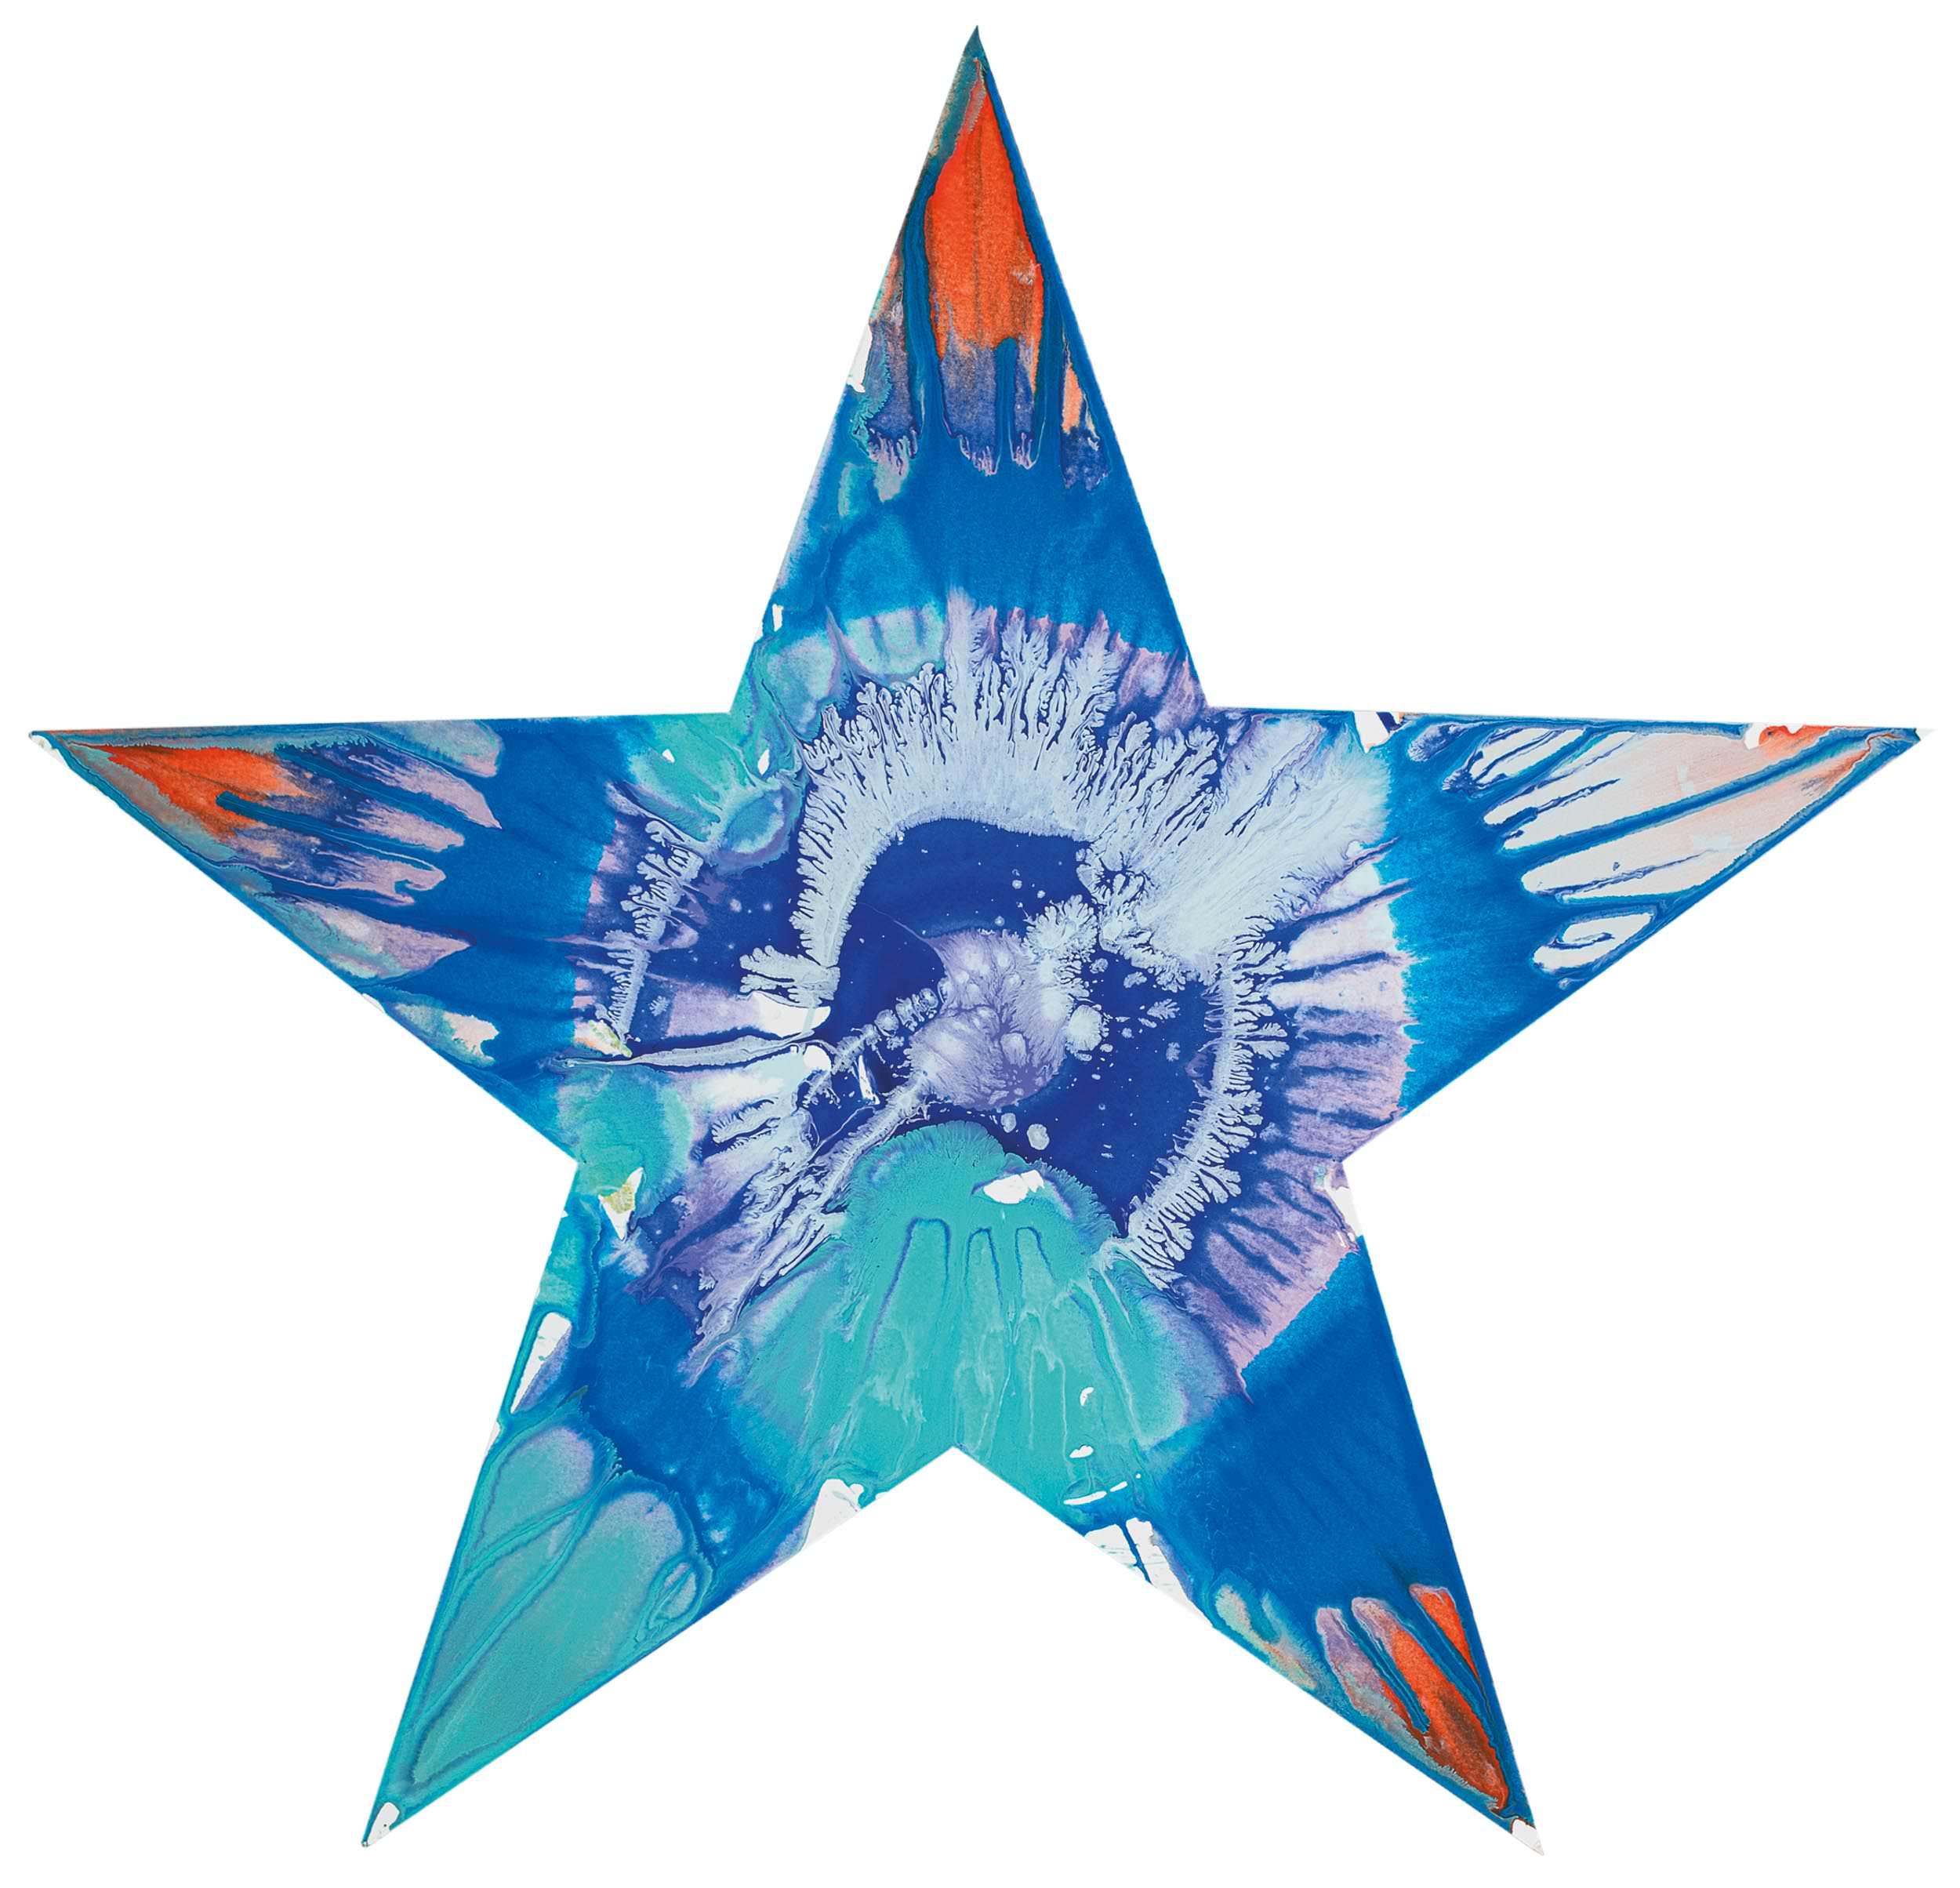 Star Spin Painting (2009)